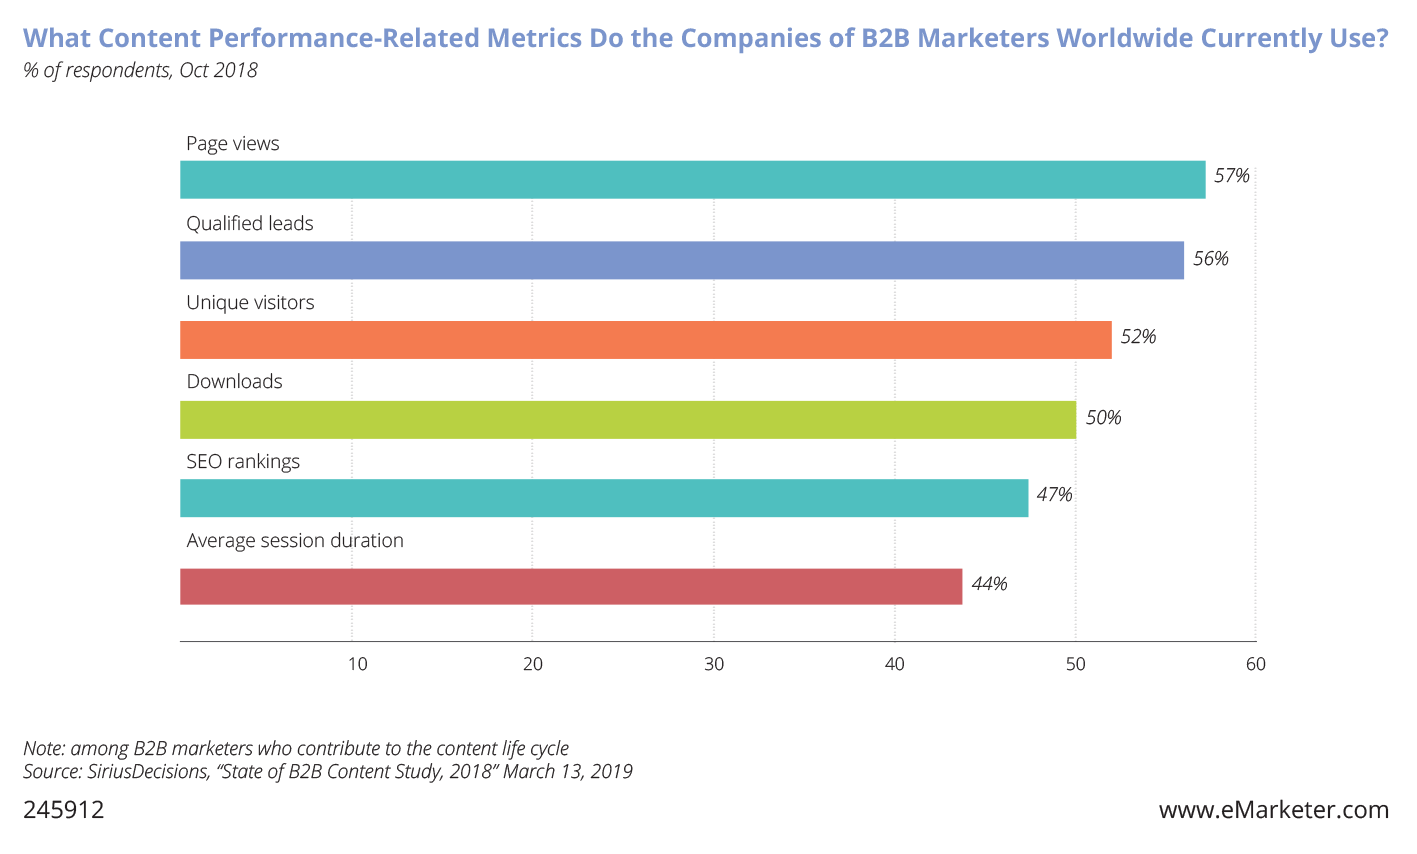 What content performance related metrics do the companies of B2B marketers worldwide currently use?